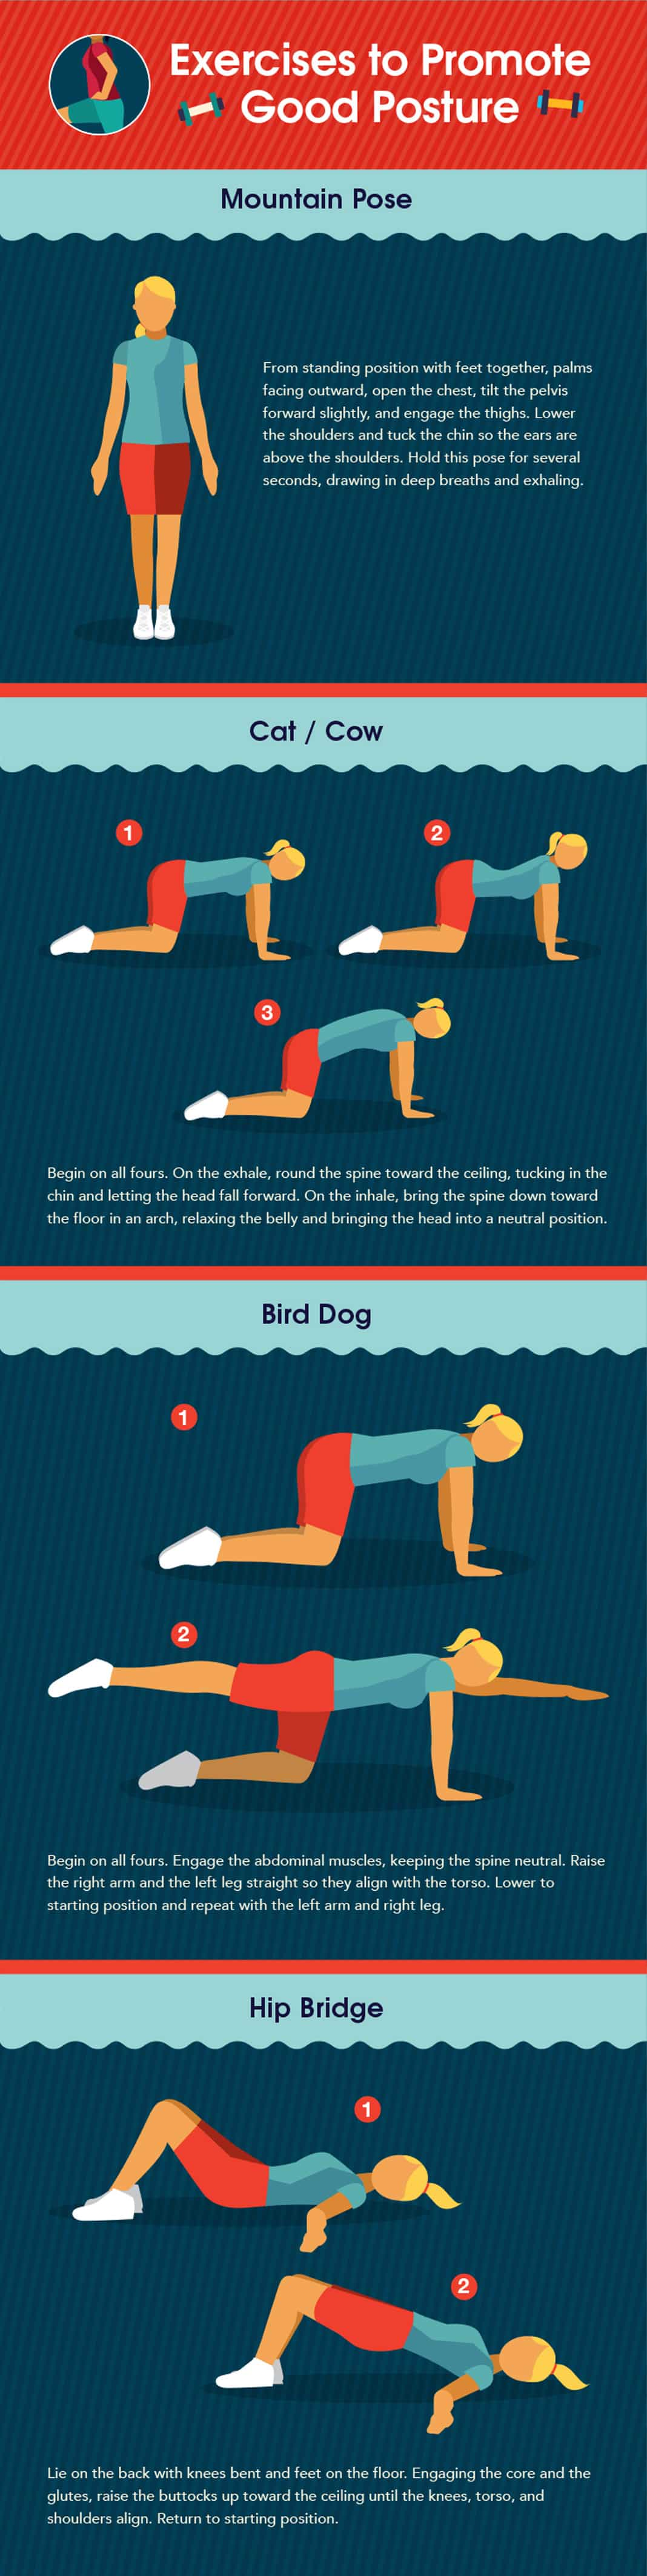 Exercise to Promote Good Posture